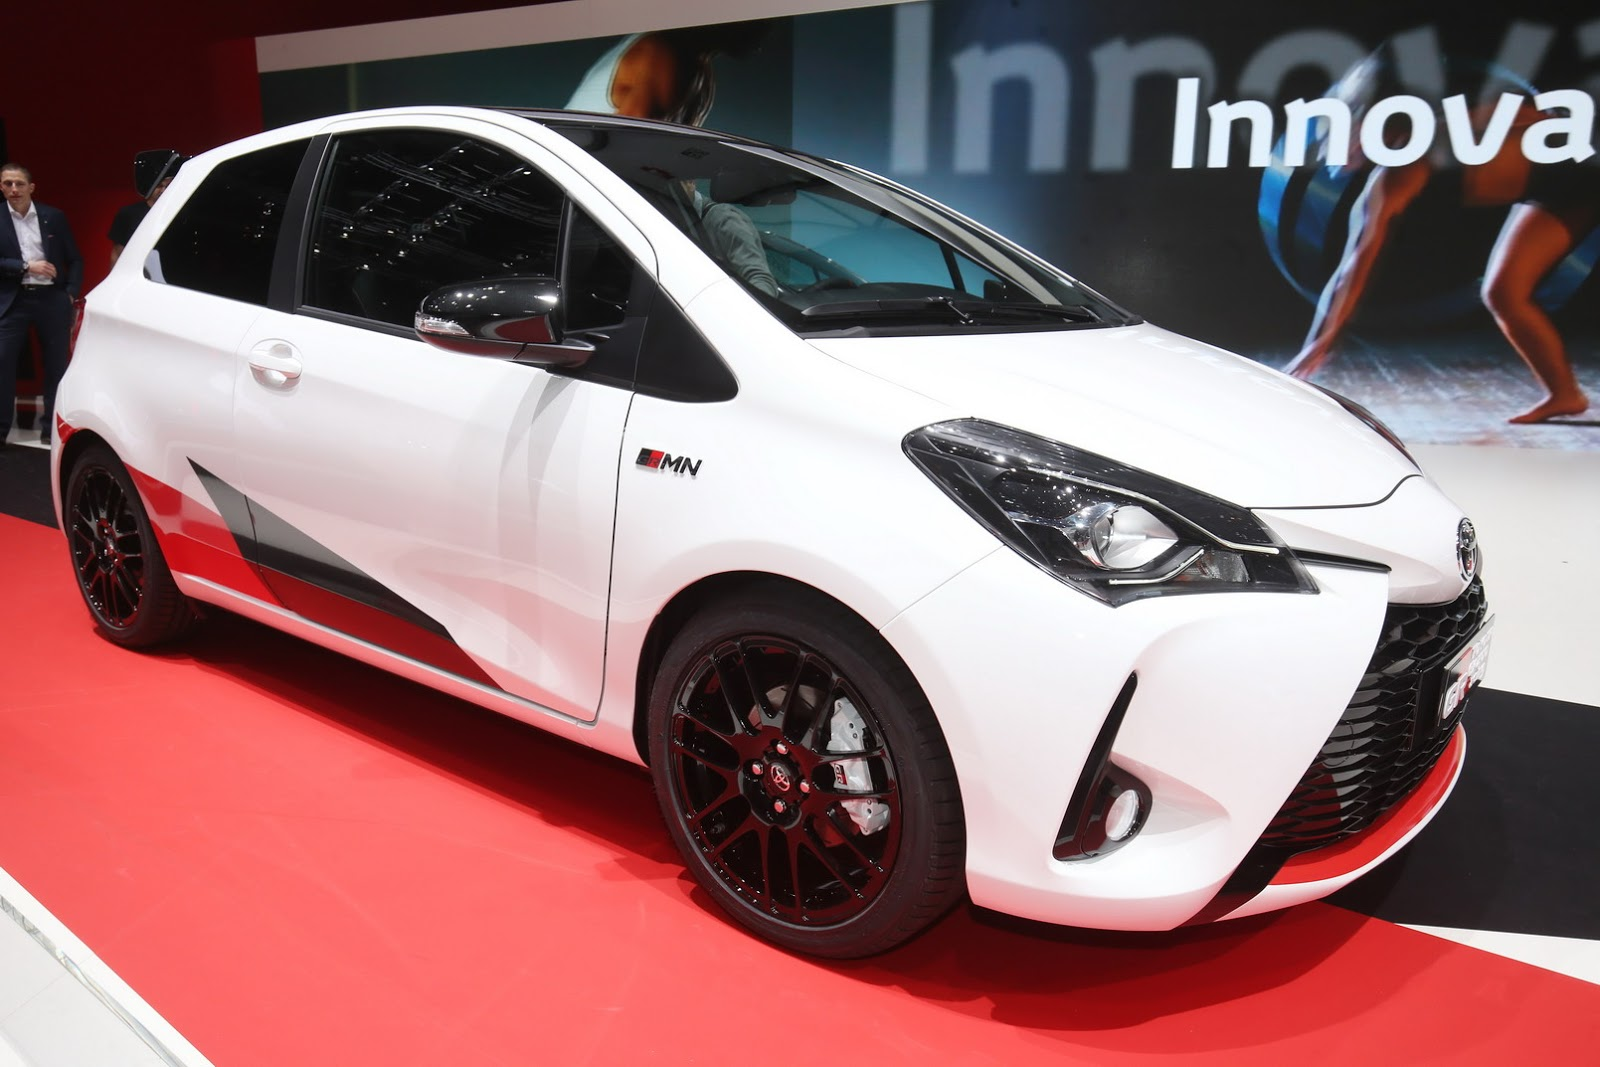 Toyota Yaris Trd Limited New Sportivo Grmn Will Be To 400 Units In Europe